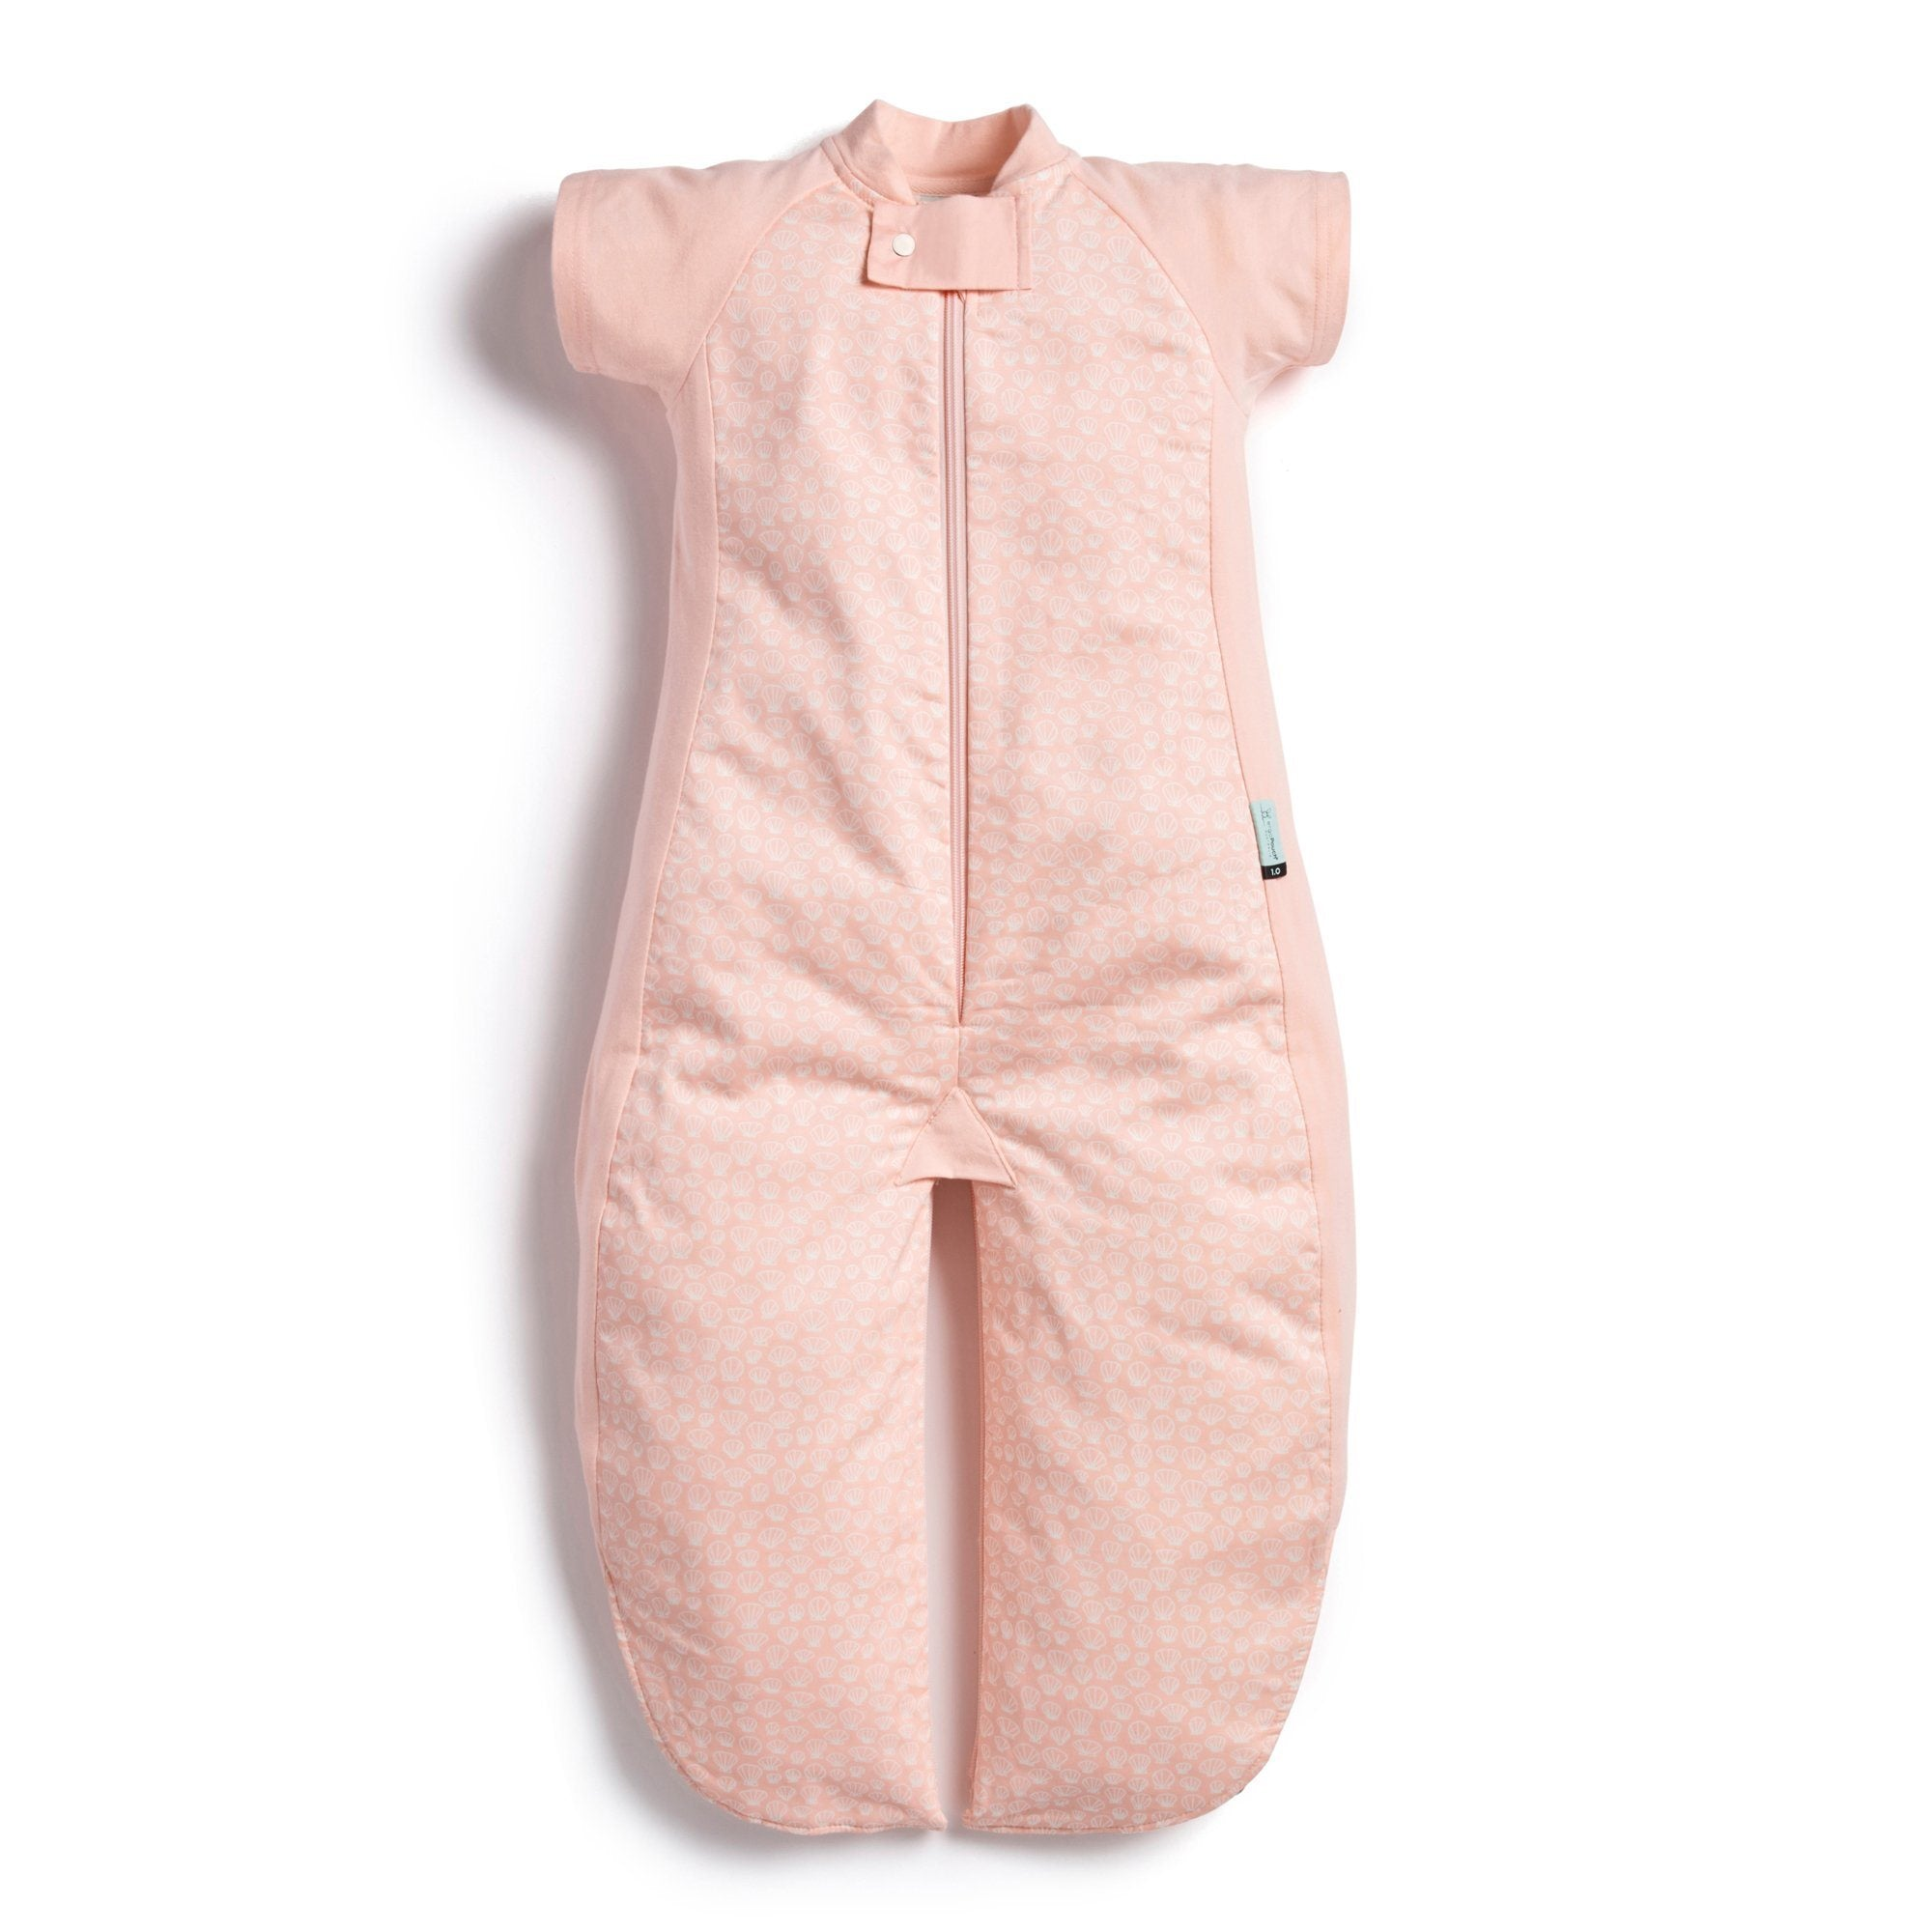 Sleep Suit Bag 1.0 tog (Shells)